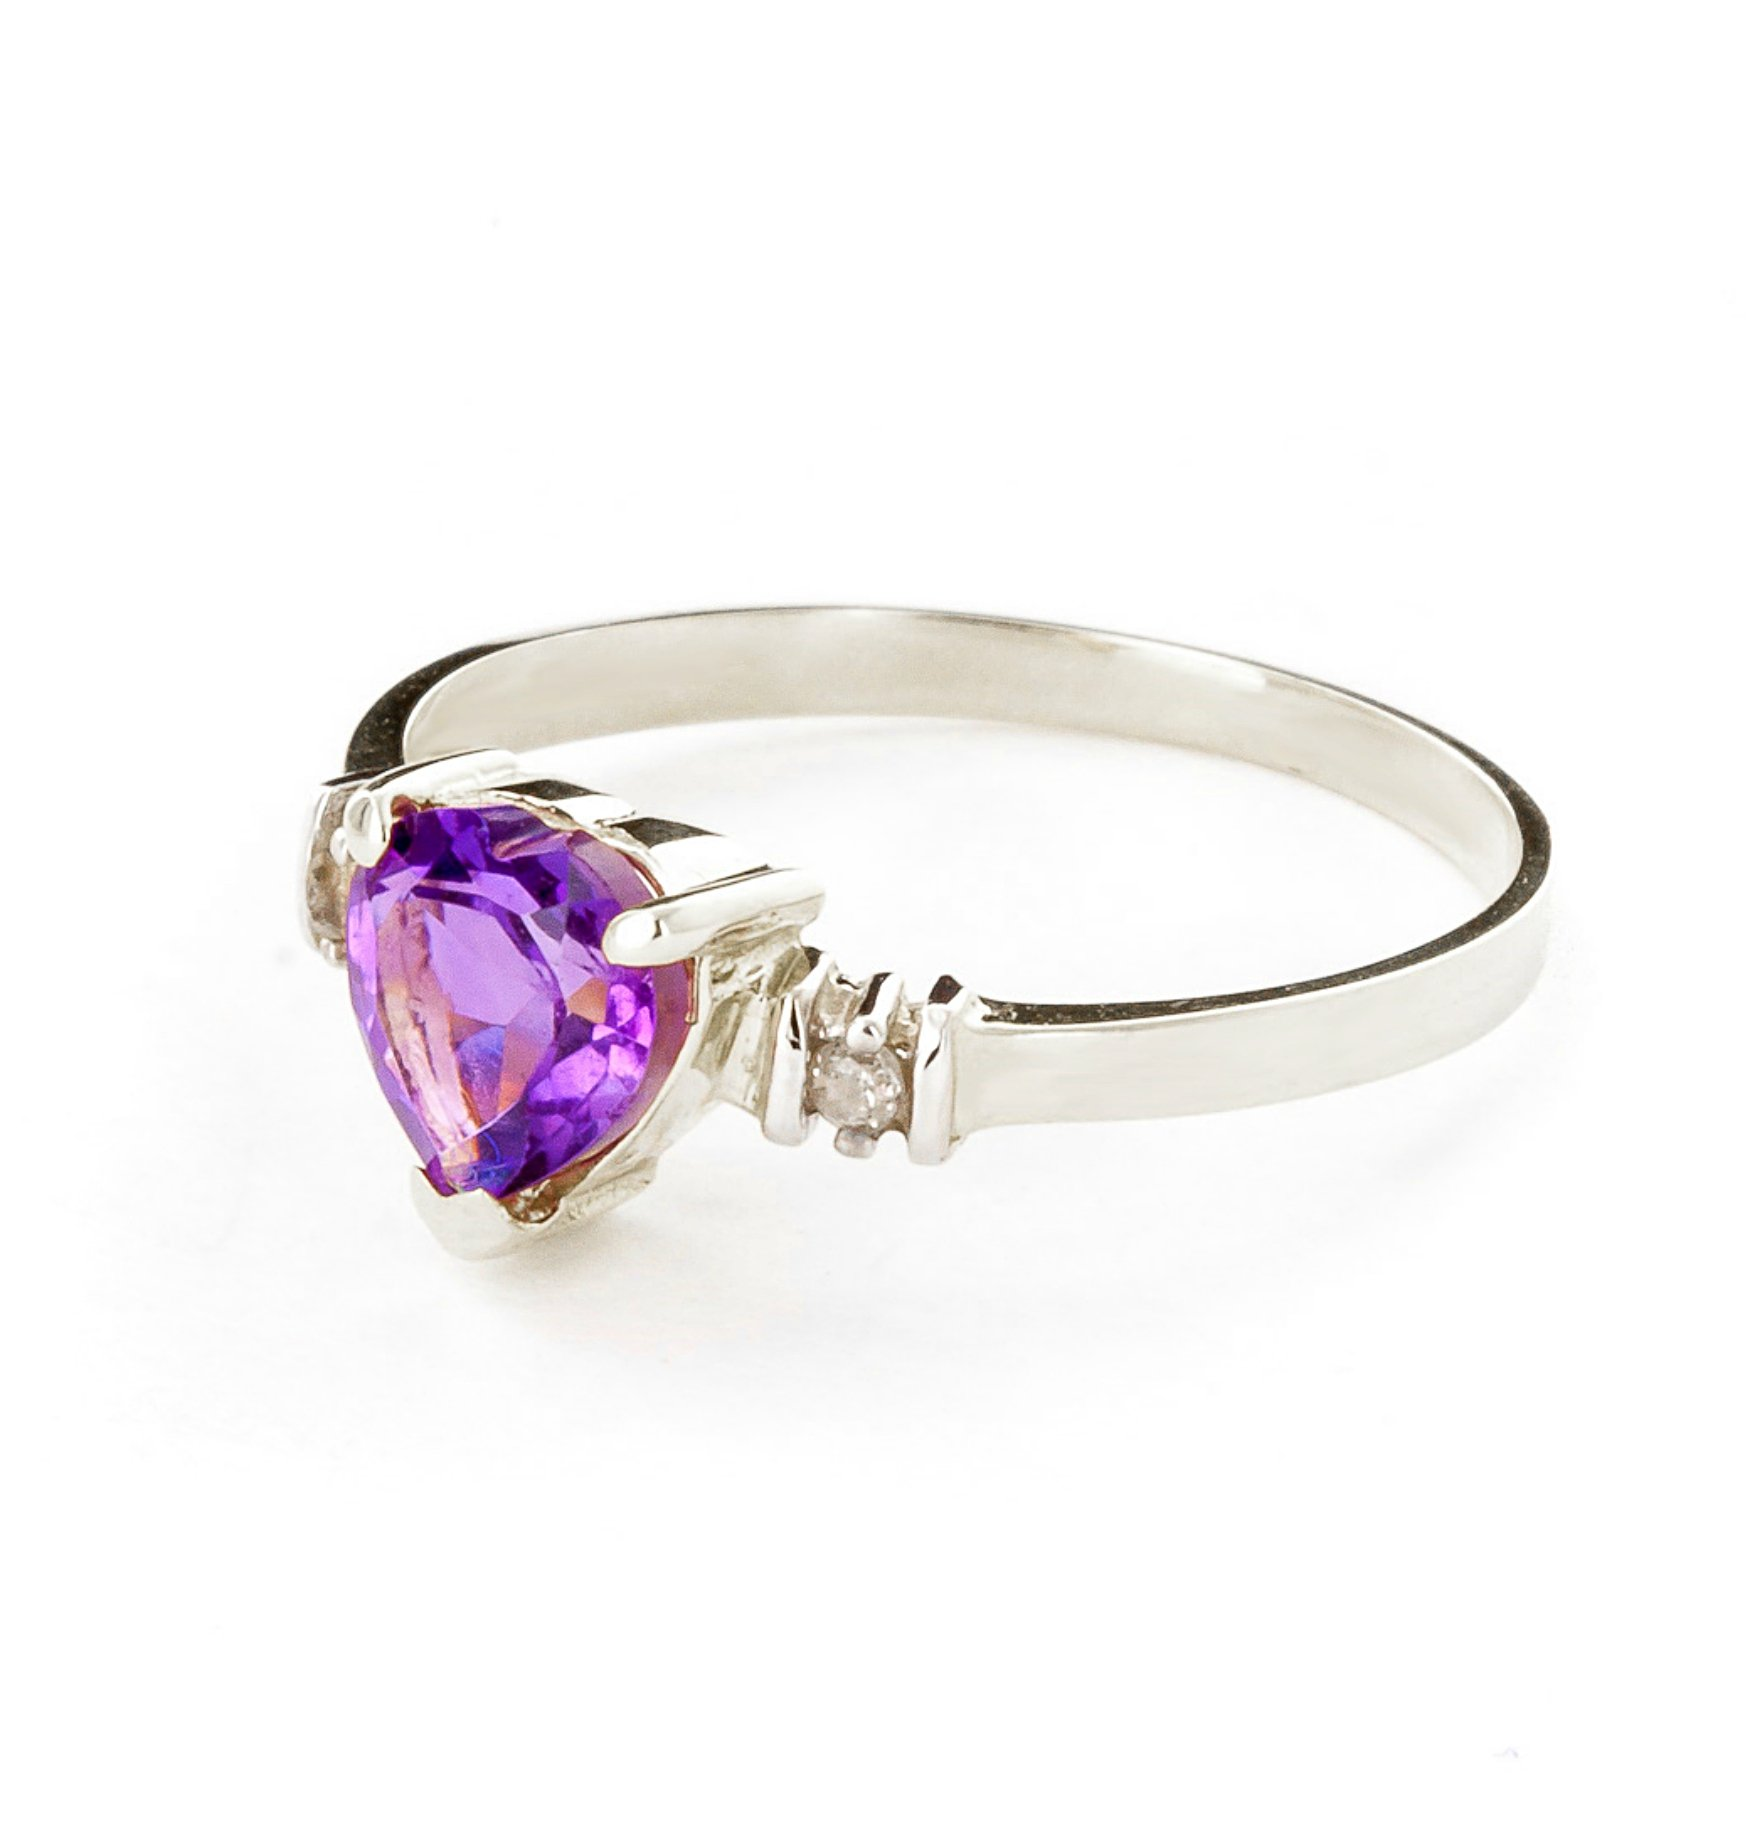 14k White Gold Ring with Genuine Diamonds and Natural Heart-shaped Purple Amethyst - Size 11 by Galaxy Gold (Image #2)